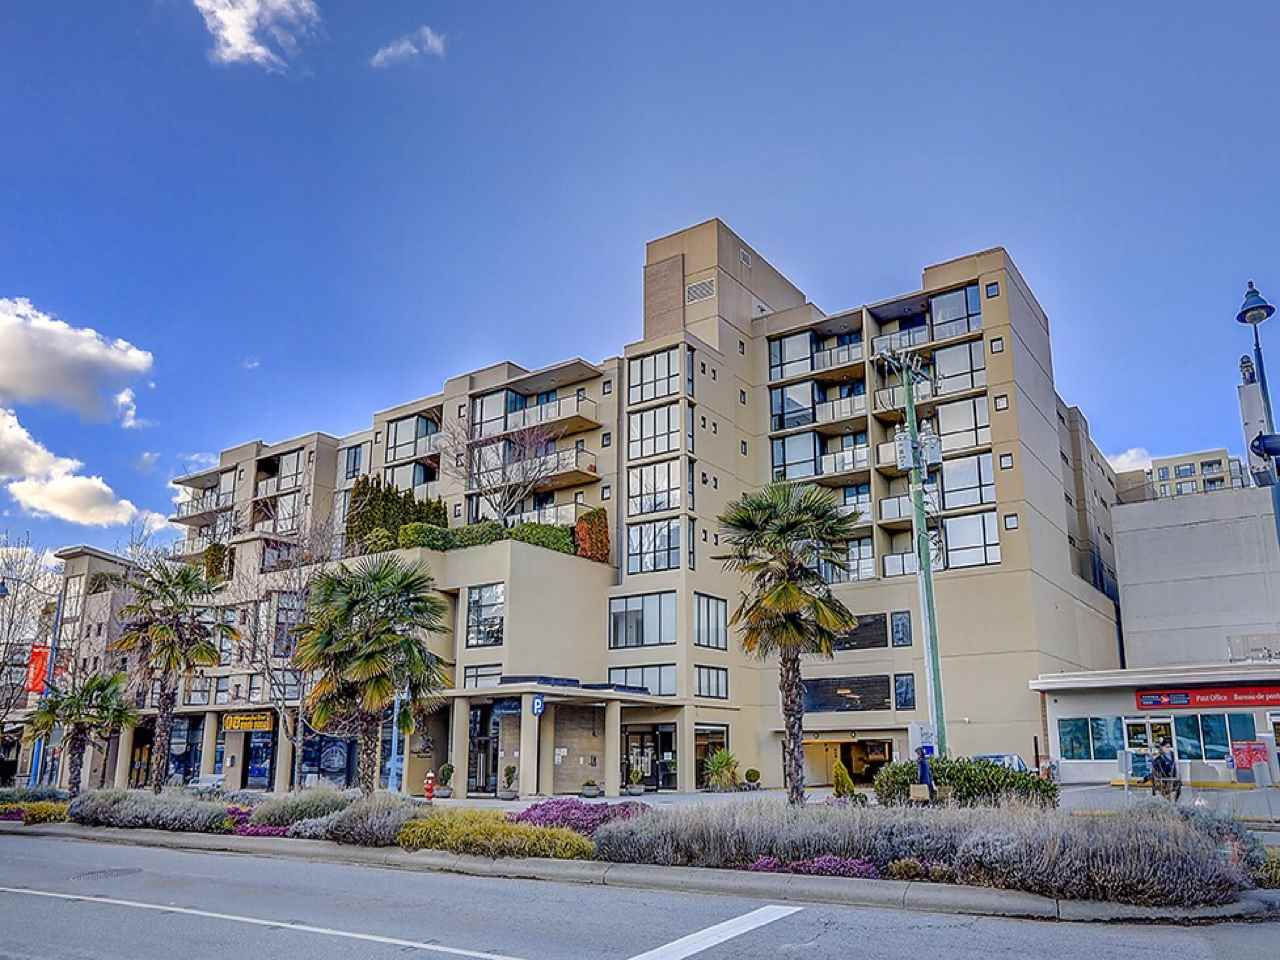 Main Photo: 1202 7831 WESTMINSTER HIGHWAY in Richmond: Brighouse Condo for sale ()  : MLS®# R2244205